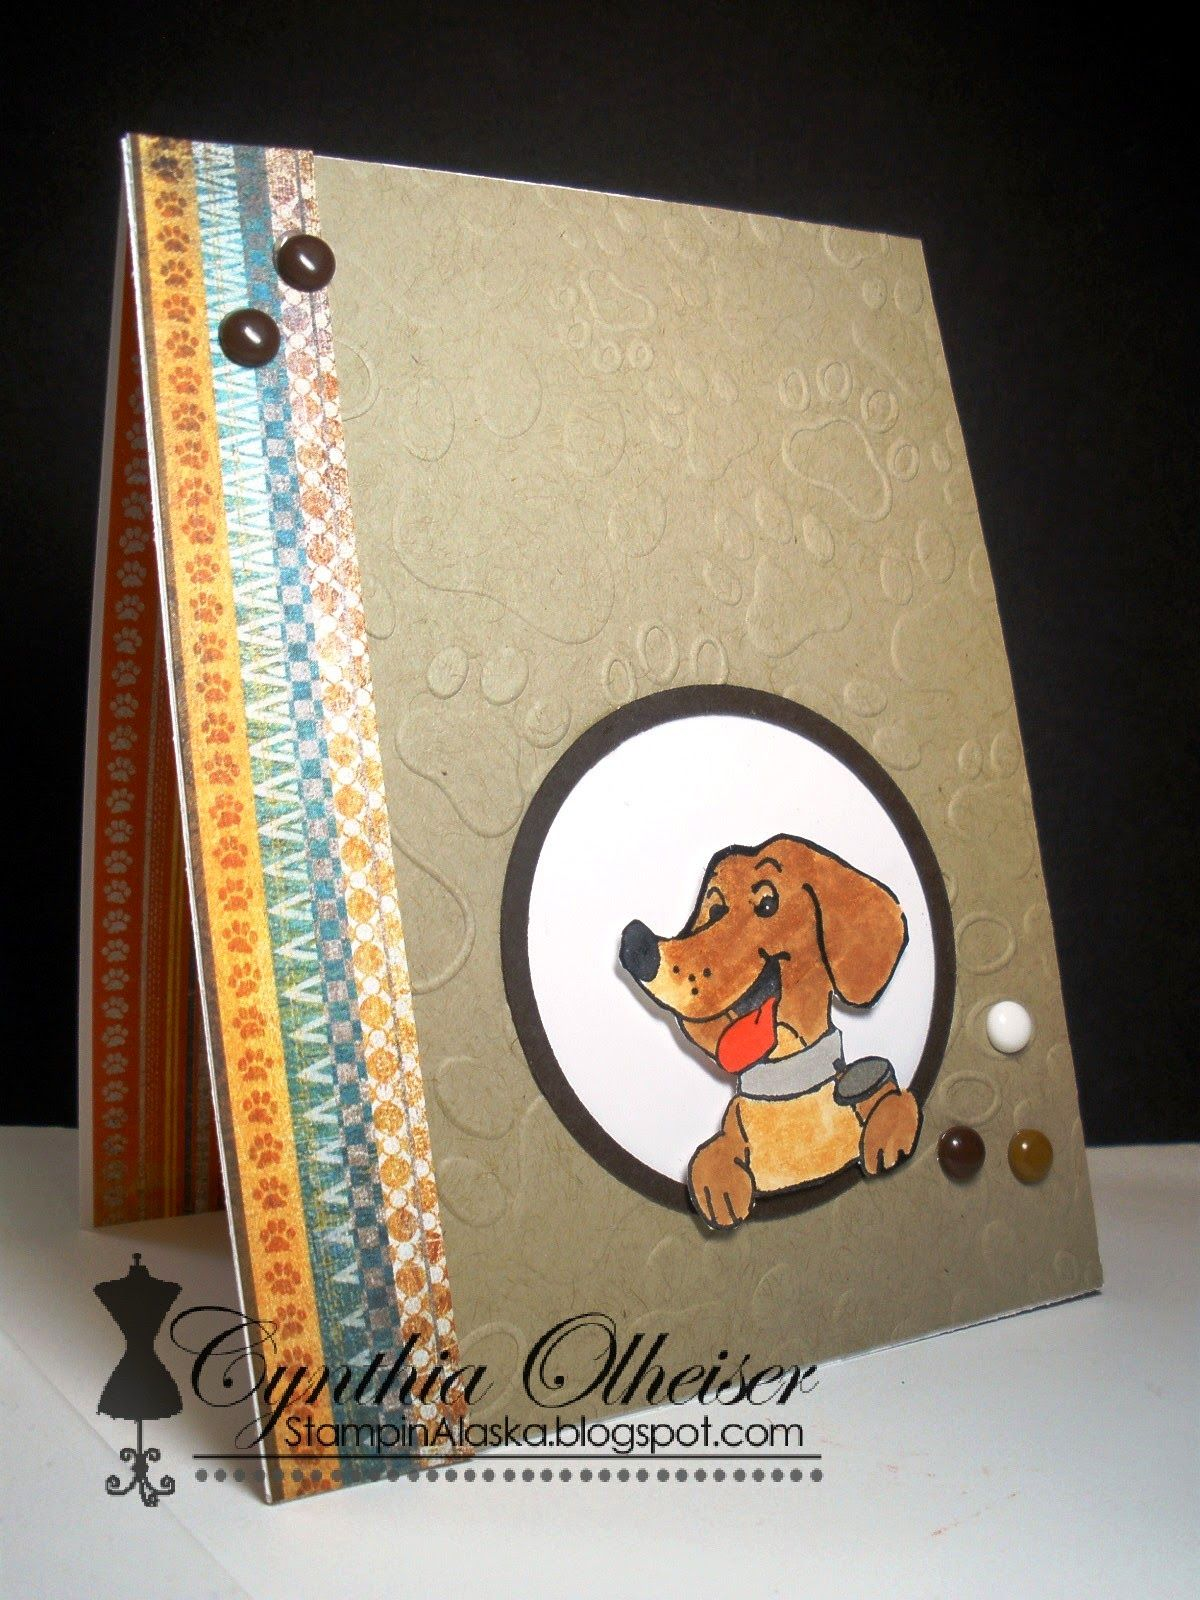 Art Impressions To The End Set Ai Front And Backs Handmade Dog Themed Birthday Card Inside Of